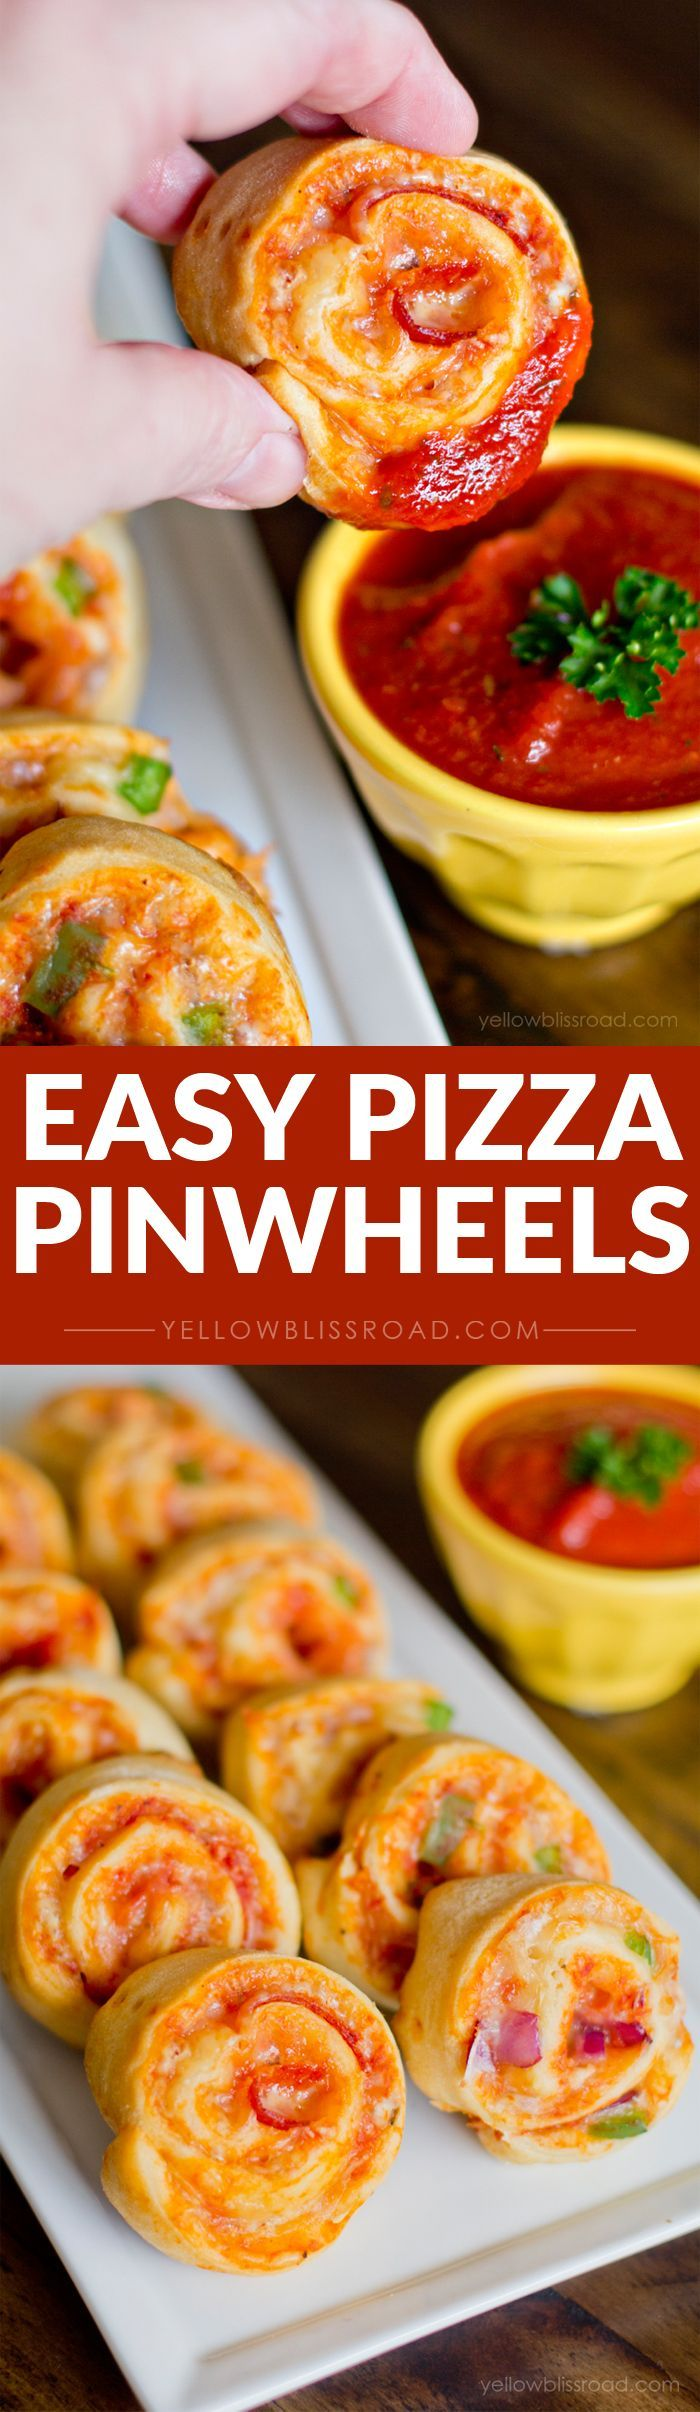 Pizza Pinwheels with Homemade Pizza Sauce - So easy to make, and would be a great after school snack or finger food for a party or get together. With just a few ingredients, they come together in just minutes!